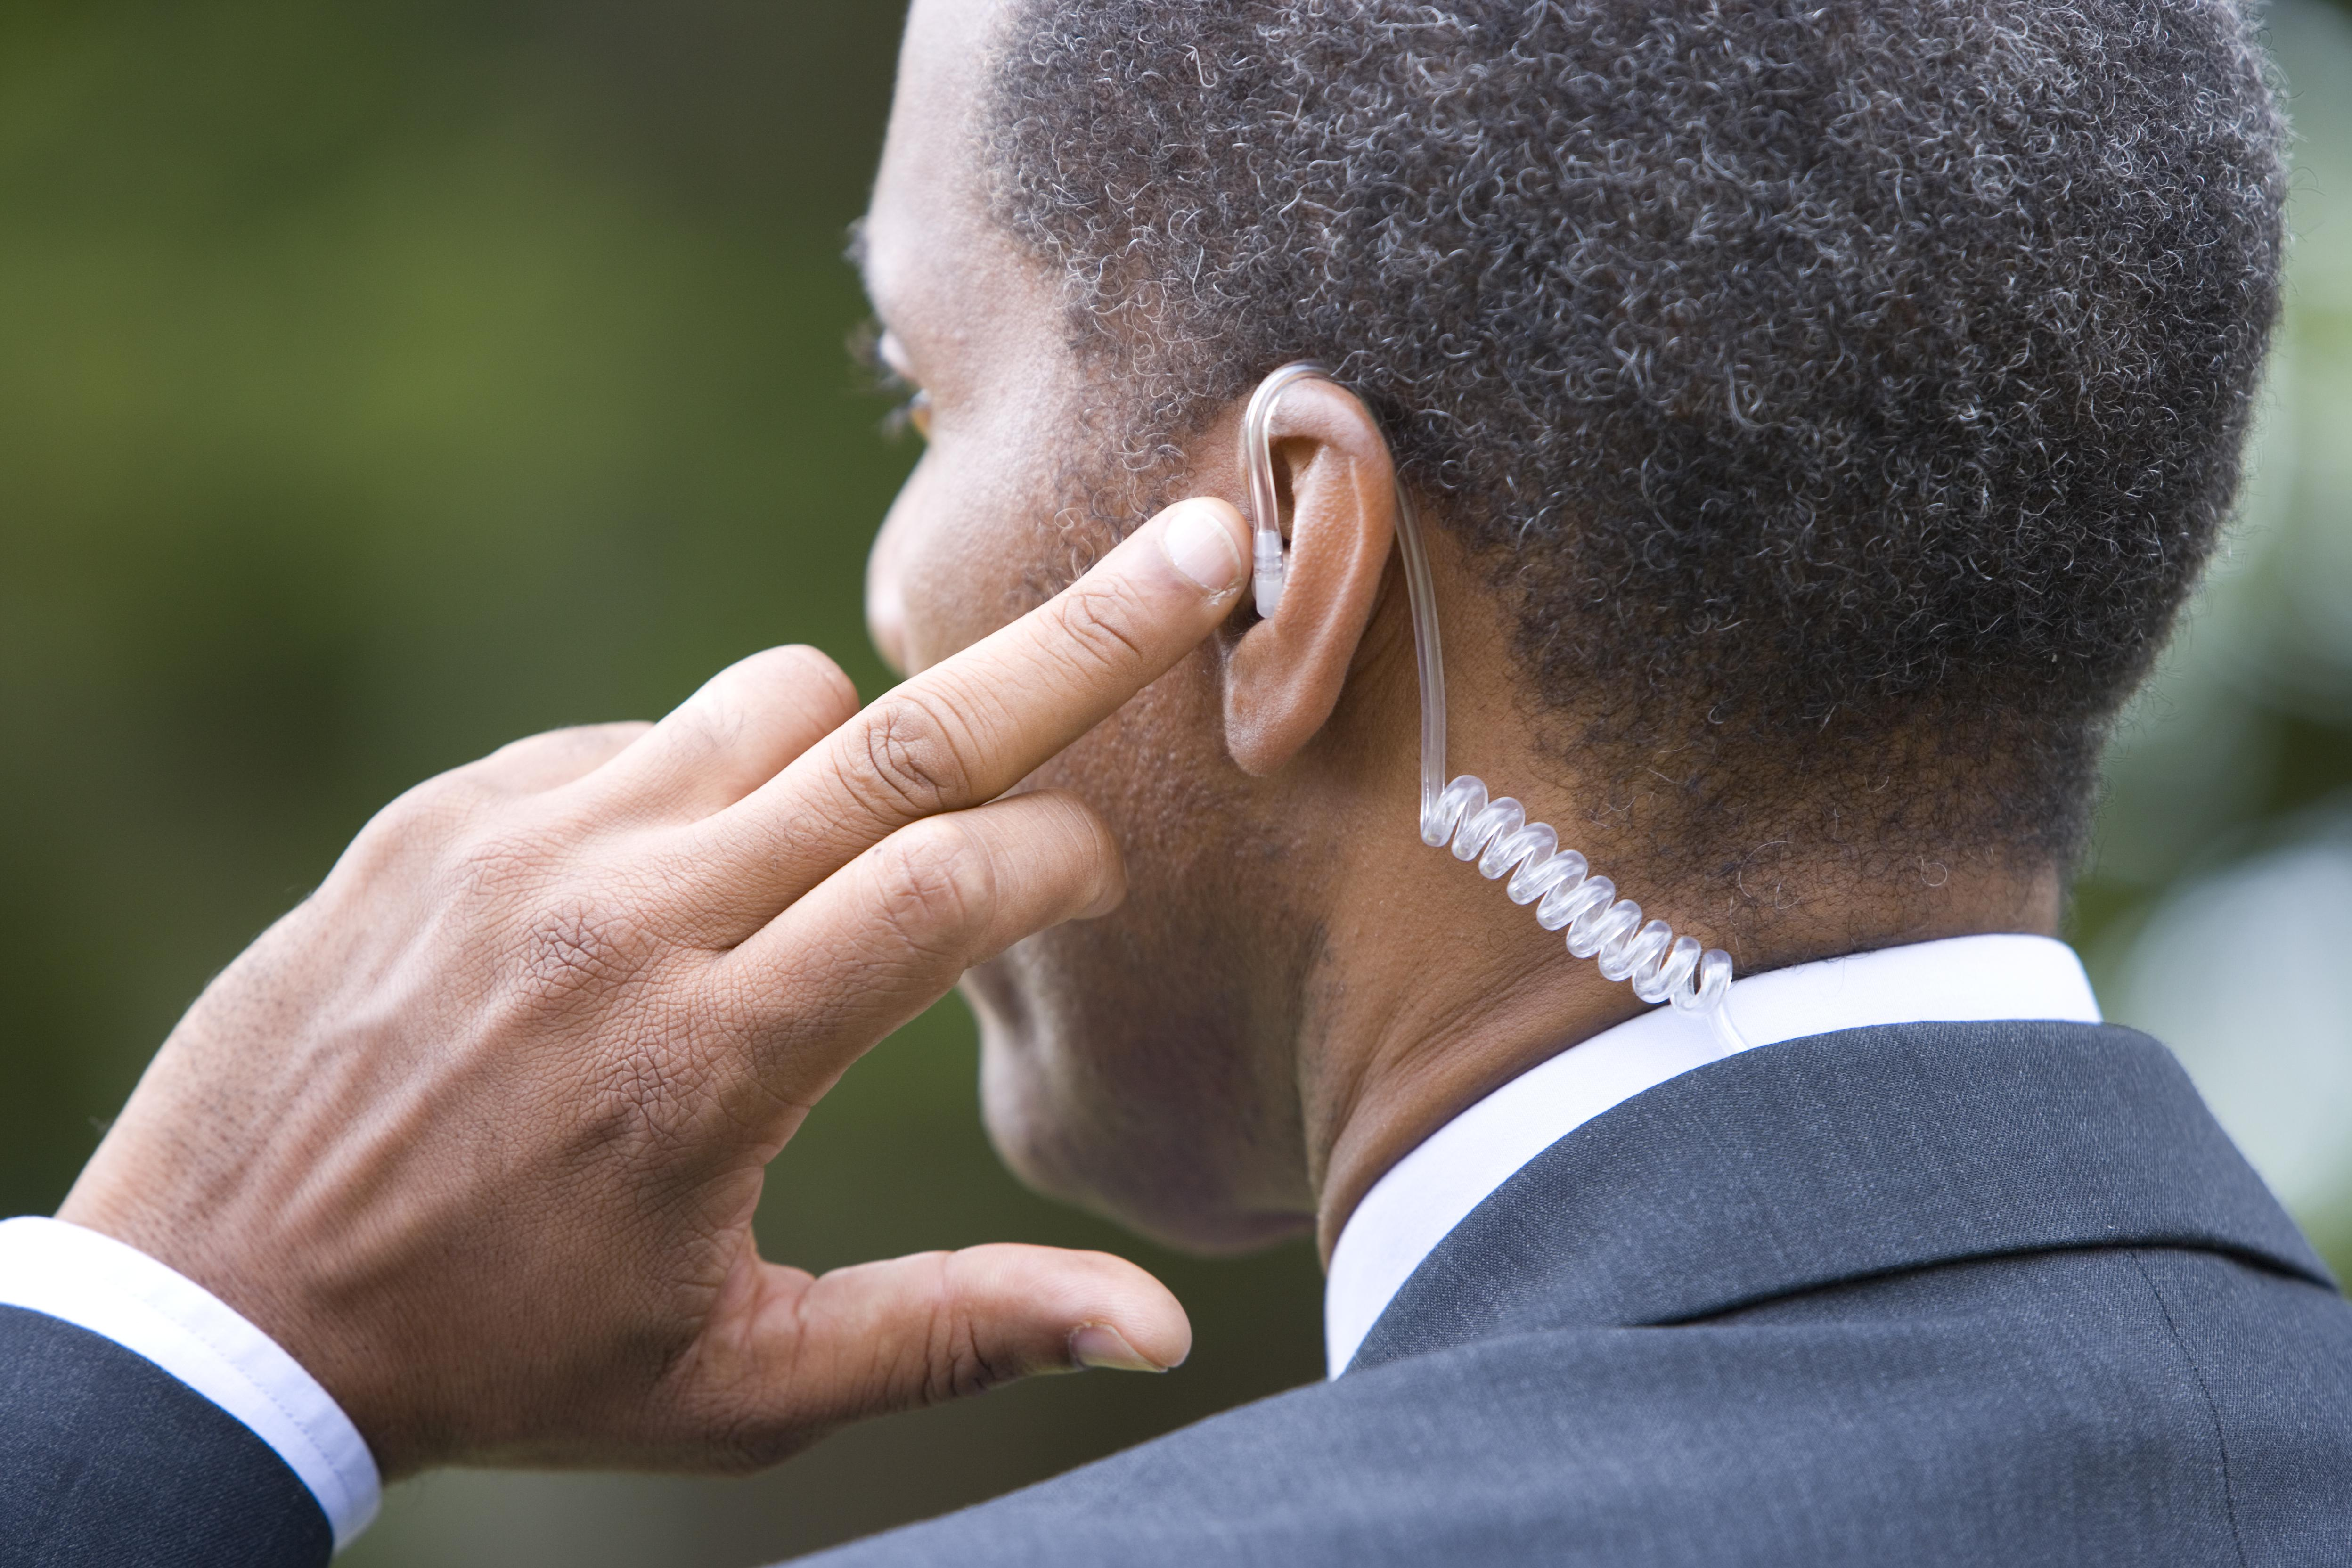 Man with finger on earpiece, rear view